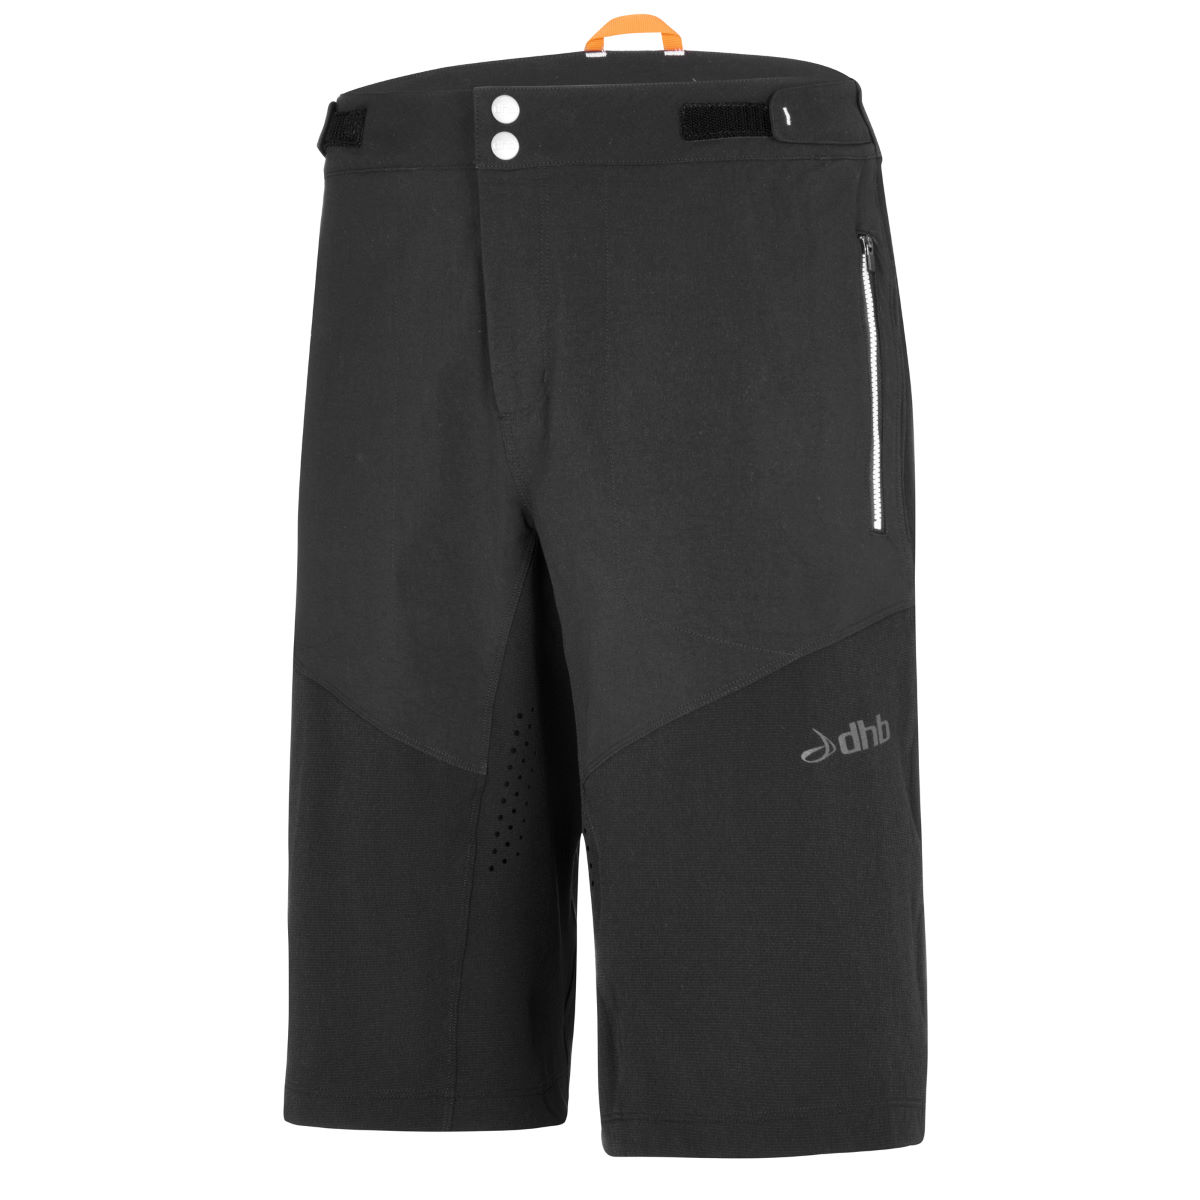 Short VTT dhb Trail Pro (baggy) - Small Noir Shorts amples